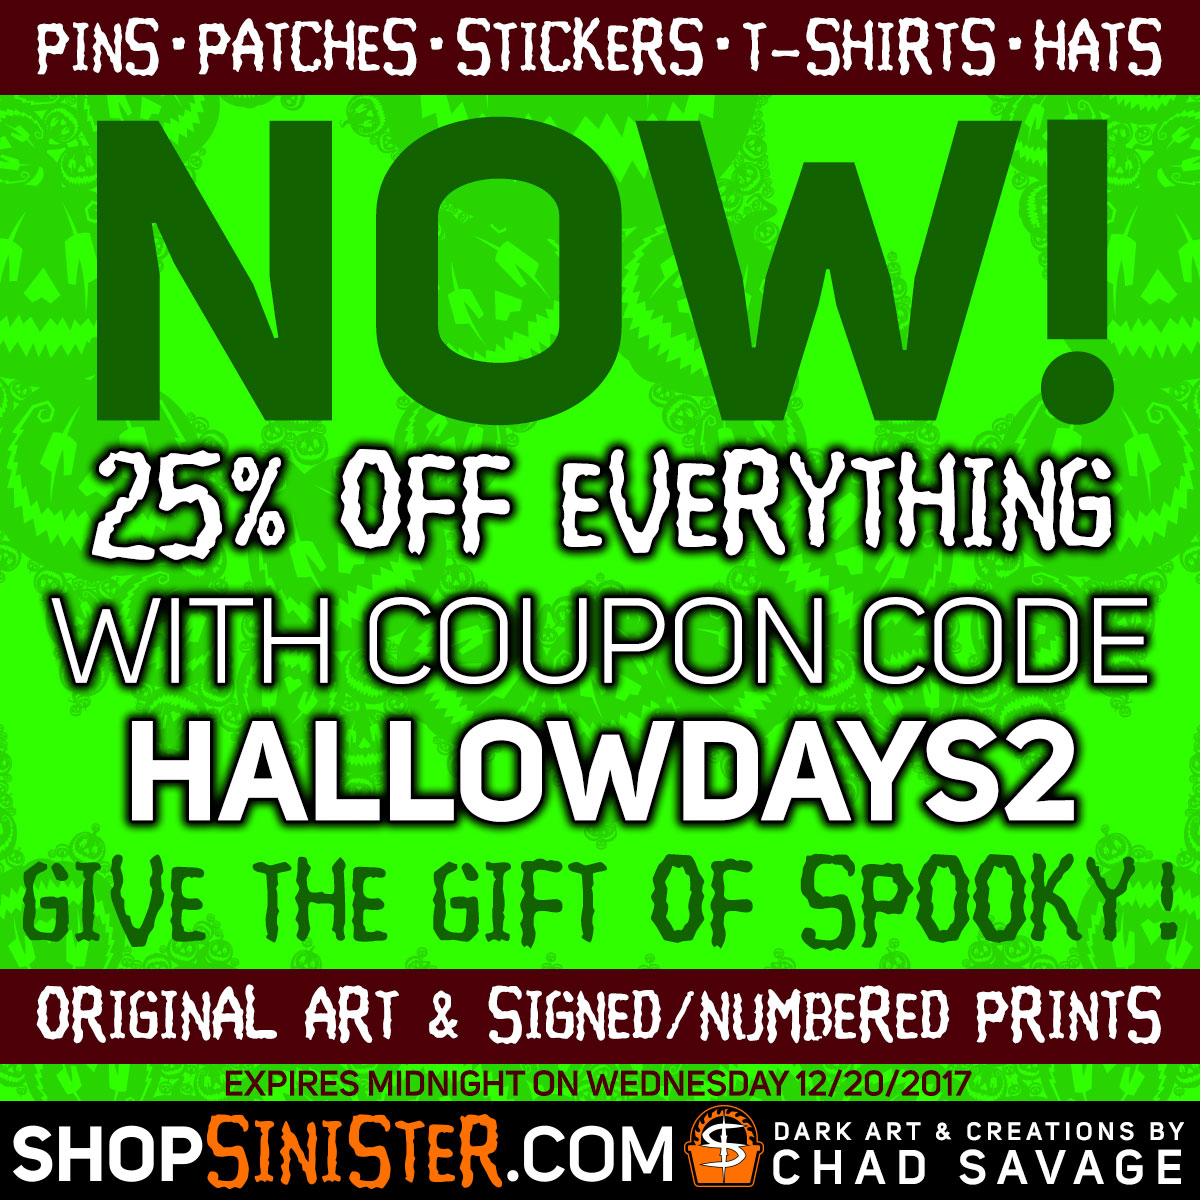 Use Coupon Code HALLOWDAYS2 for 25% OFF EVERYTHING at ShopSinister.com - click to shop now!